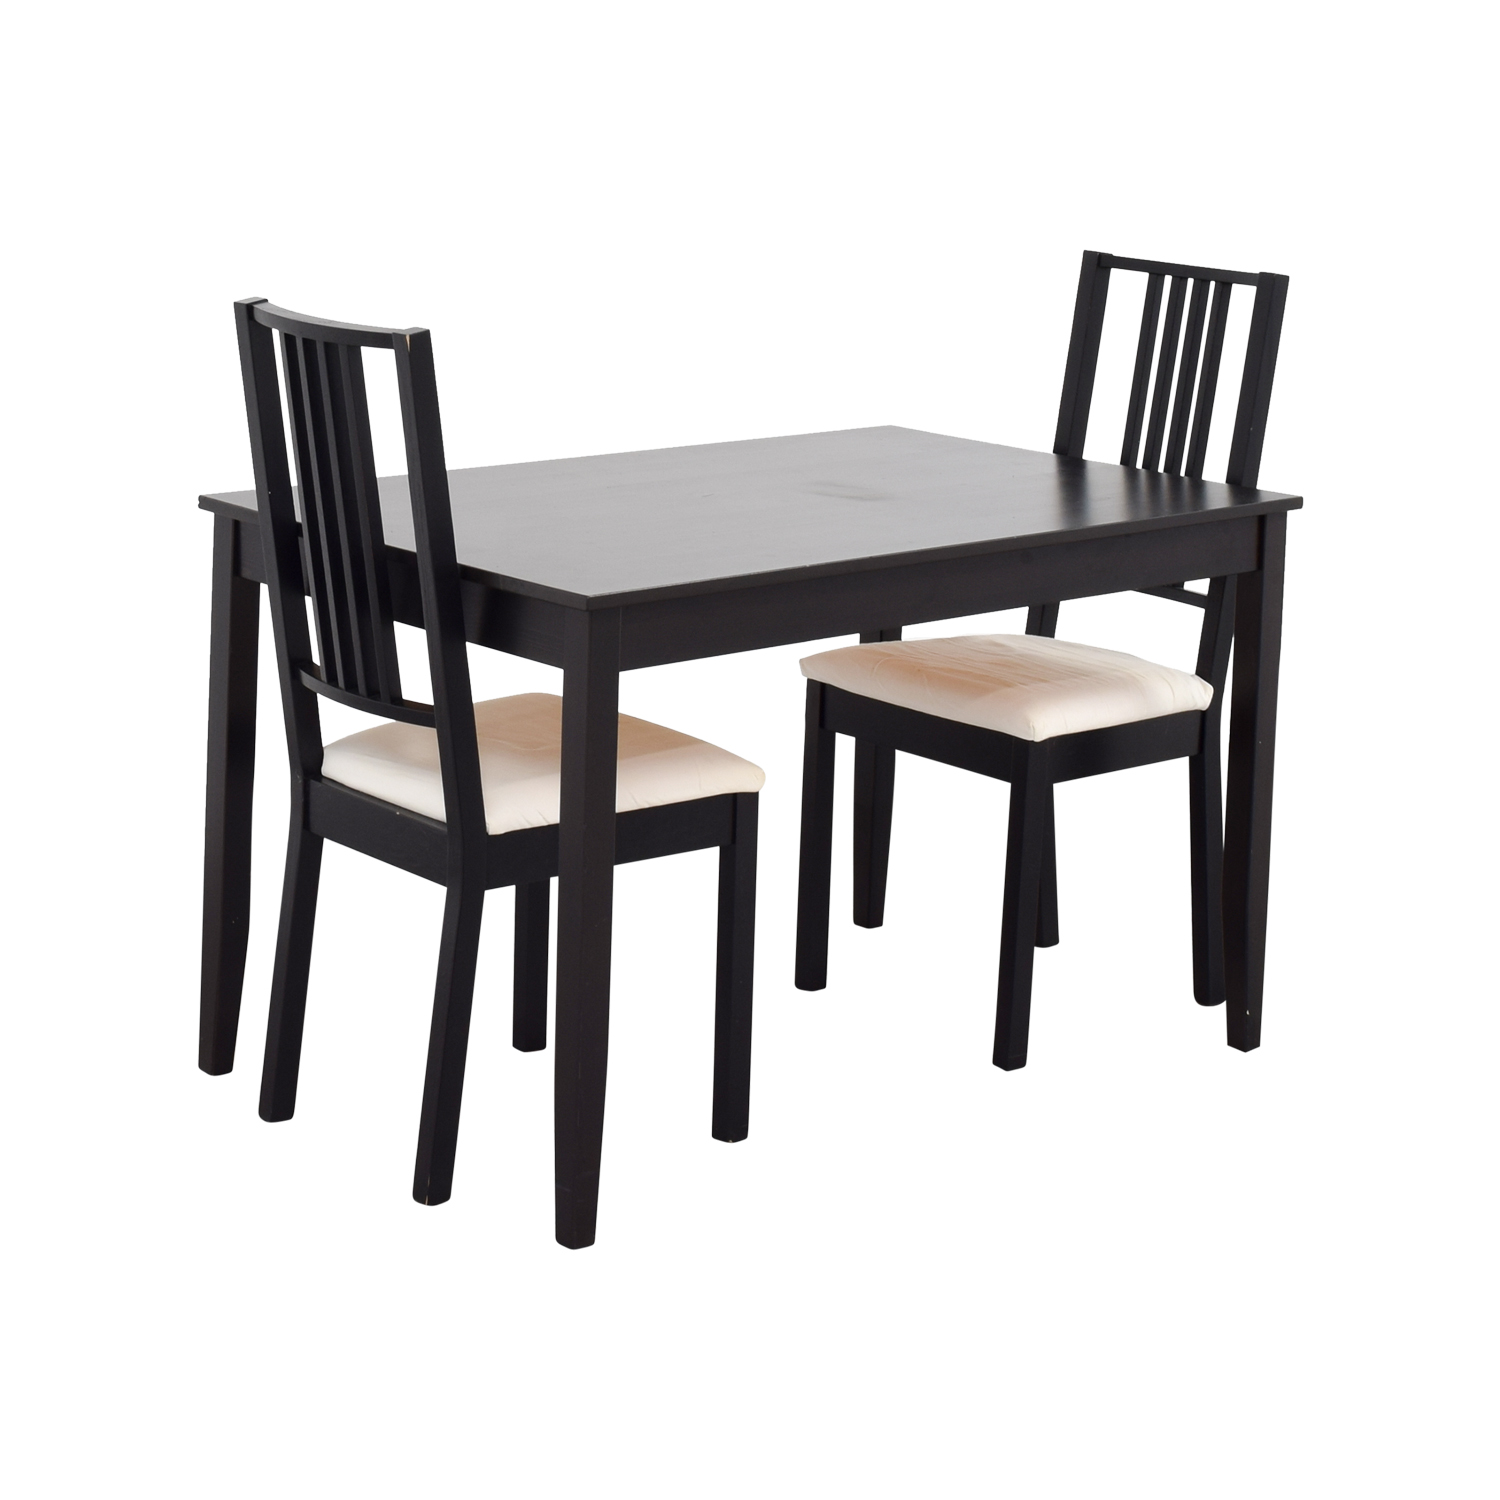 62 off ikea ikea three piece dining set tables for Ikea dining sets usa